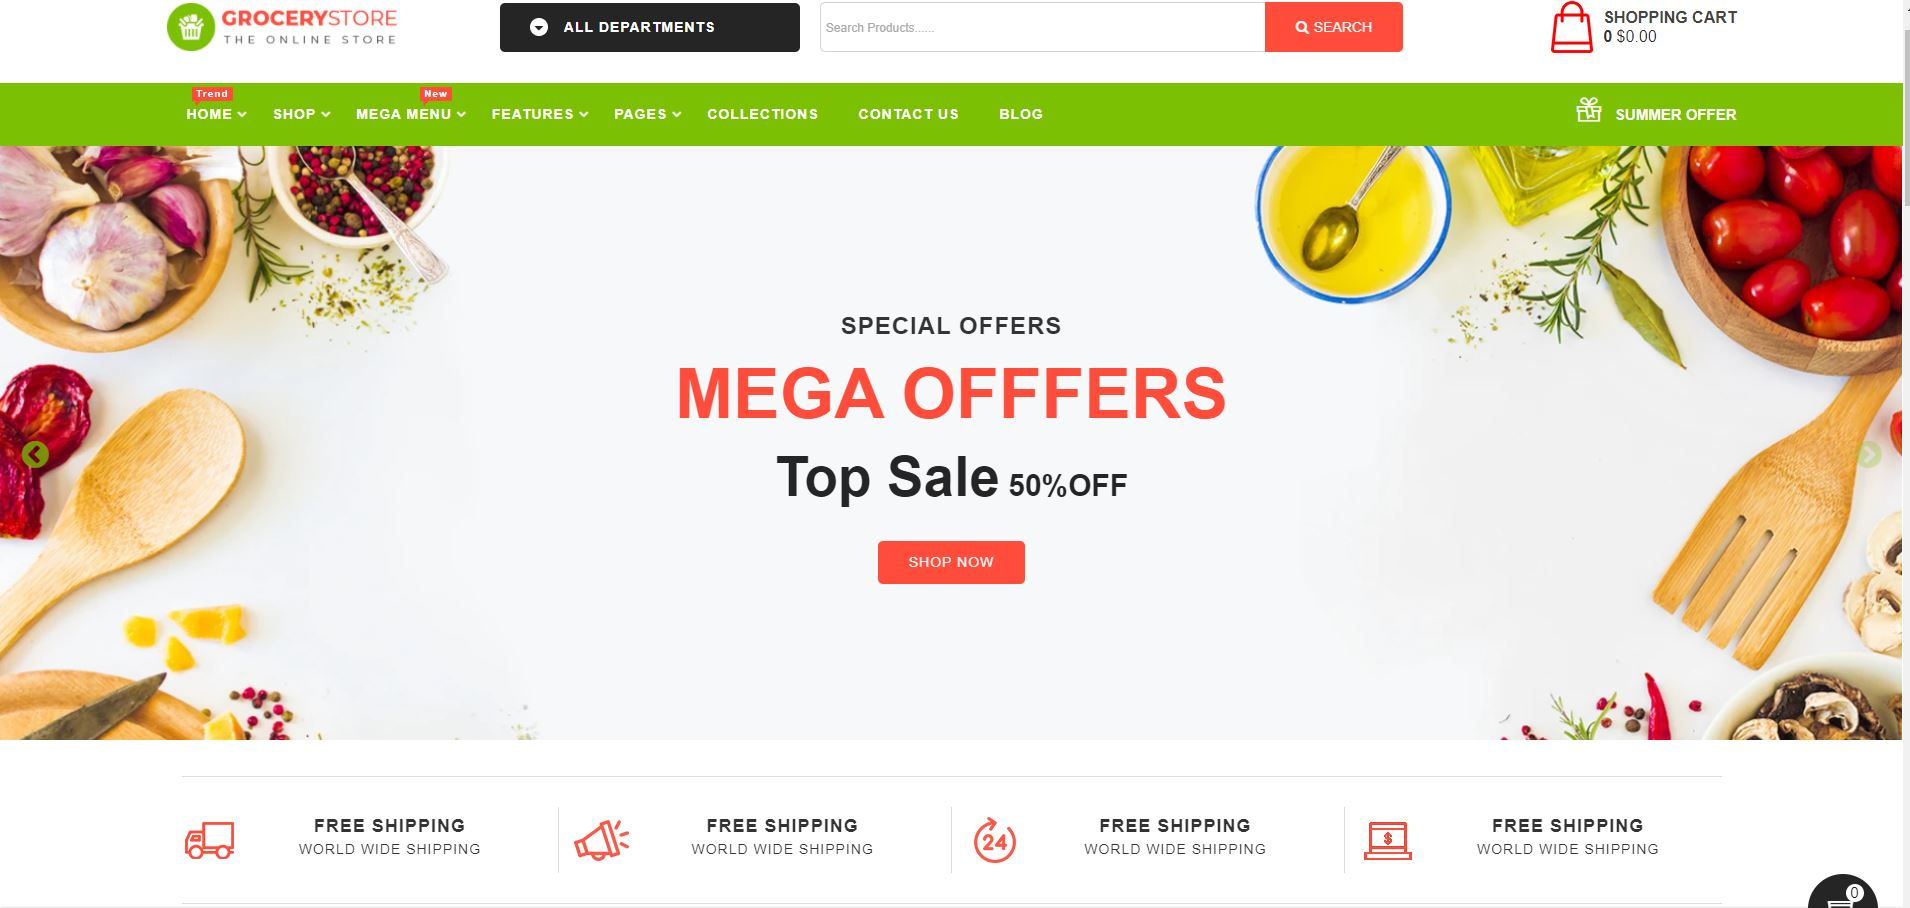 Grocery Store  Fruits and vegetables Shopify Theme